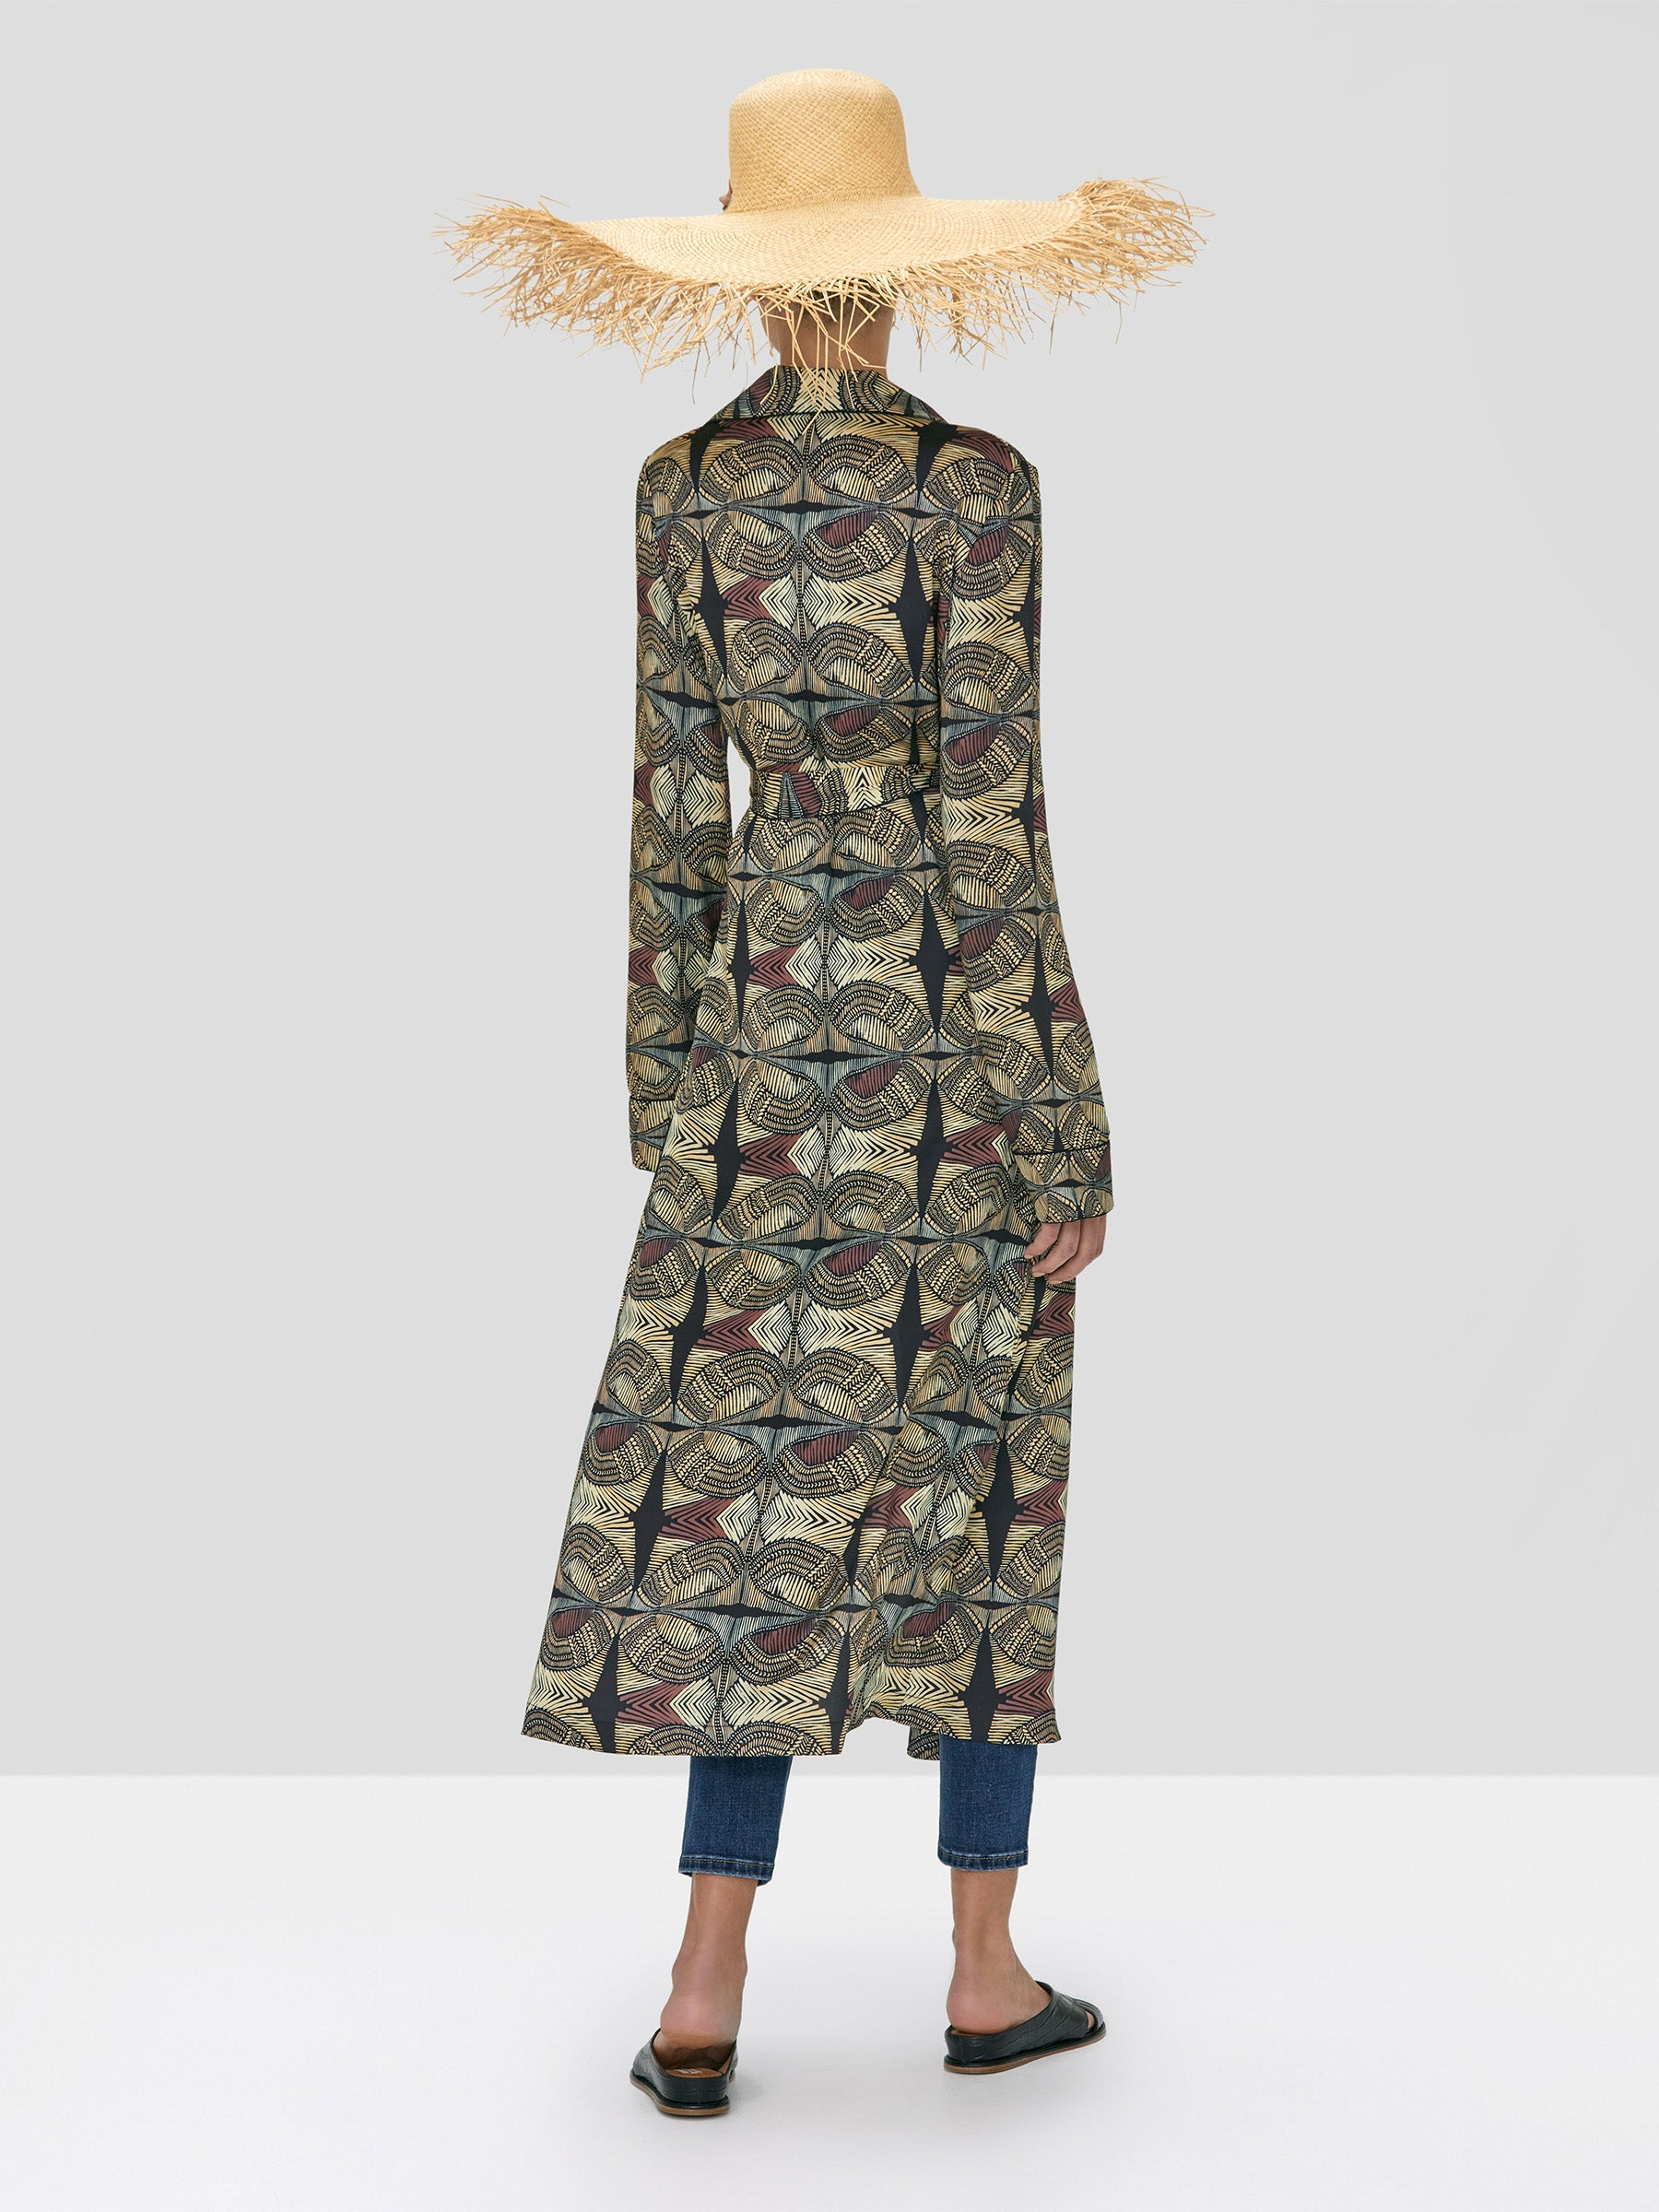 Alexis Arrati Coat and Amptin Pant in Safari from Spring Summer 2020  - Rear View